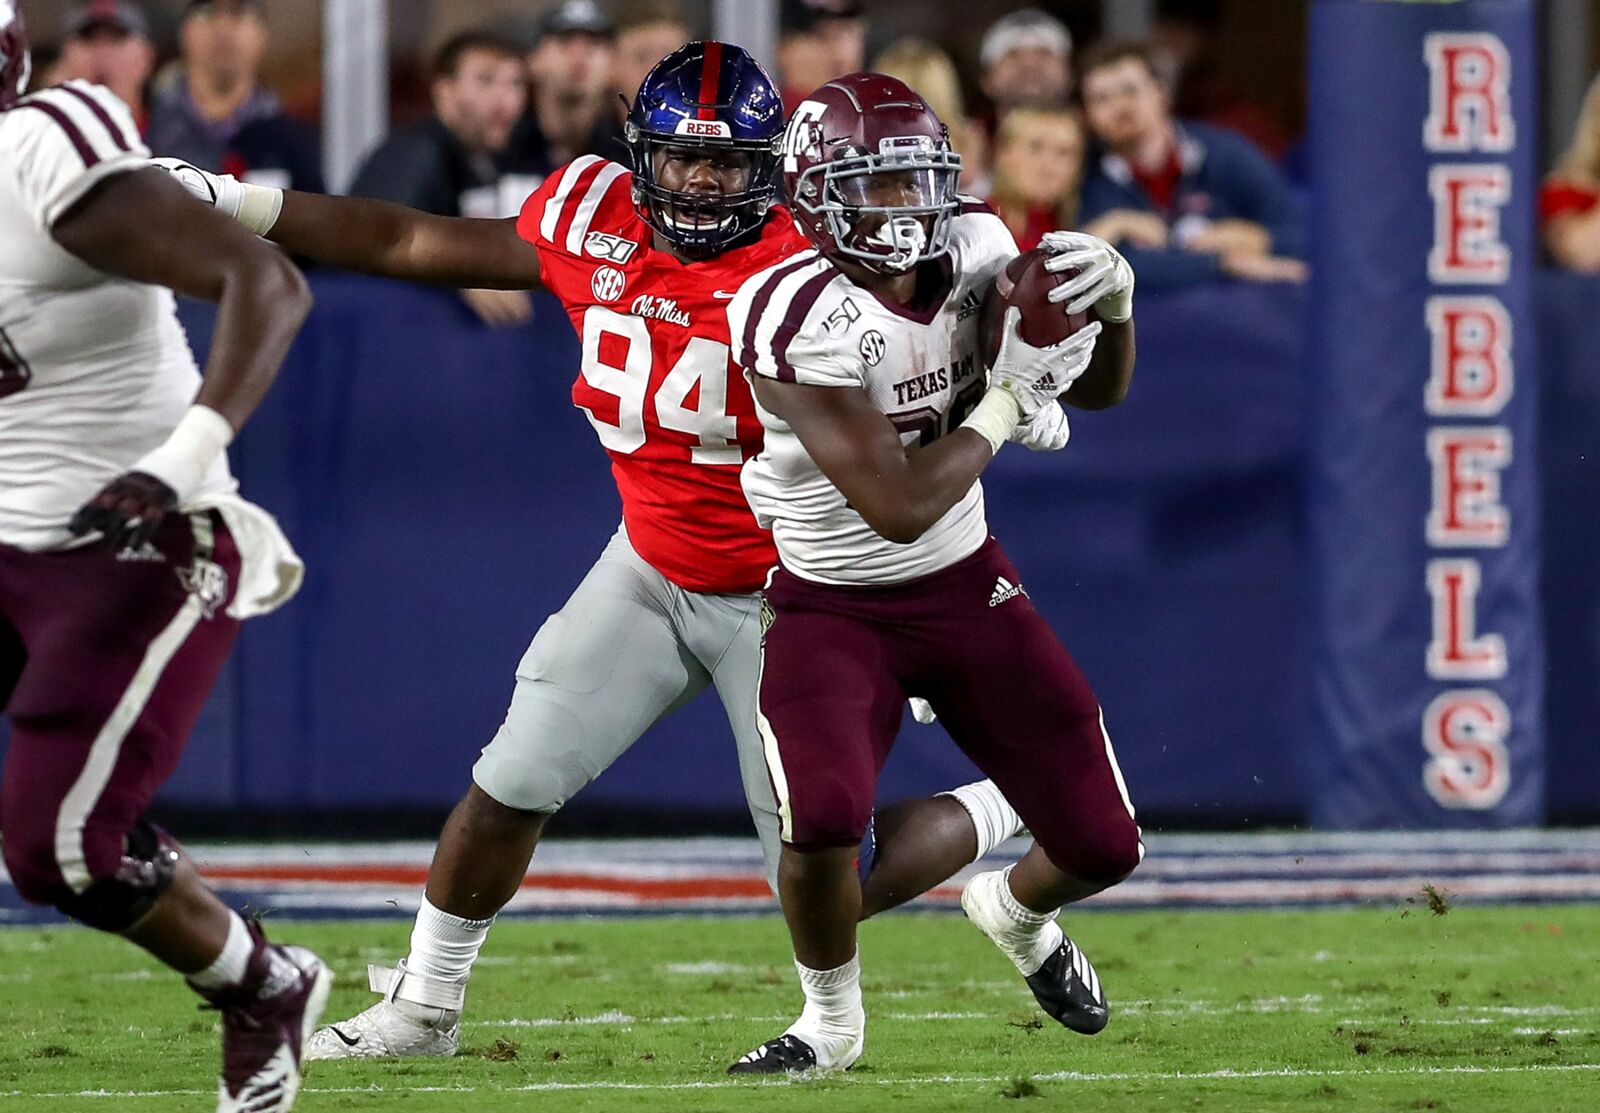 Texas A&M Football: Aggies edge out Ole Miss in win